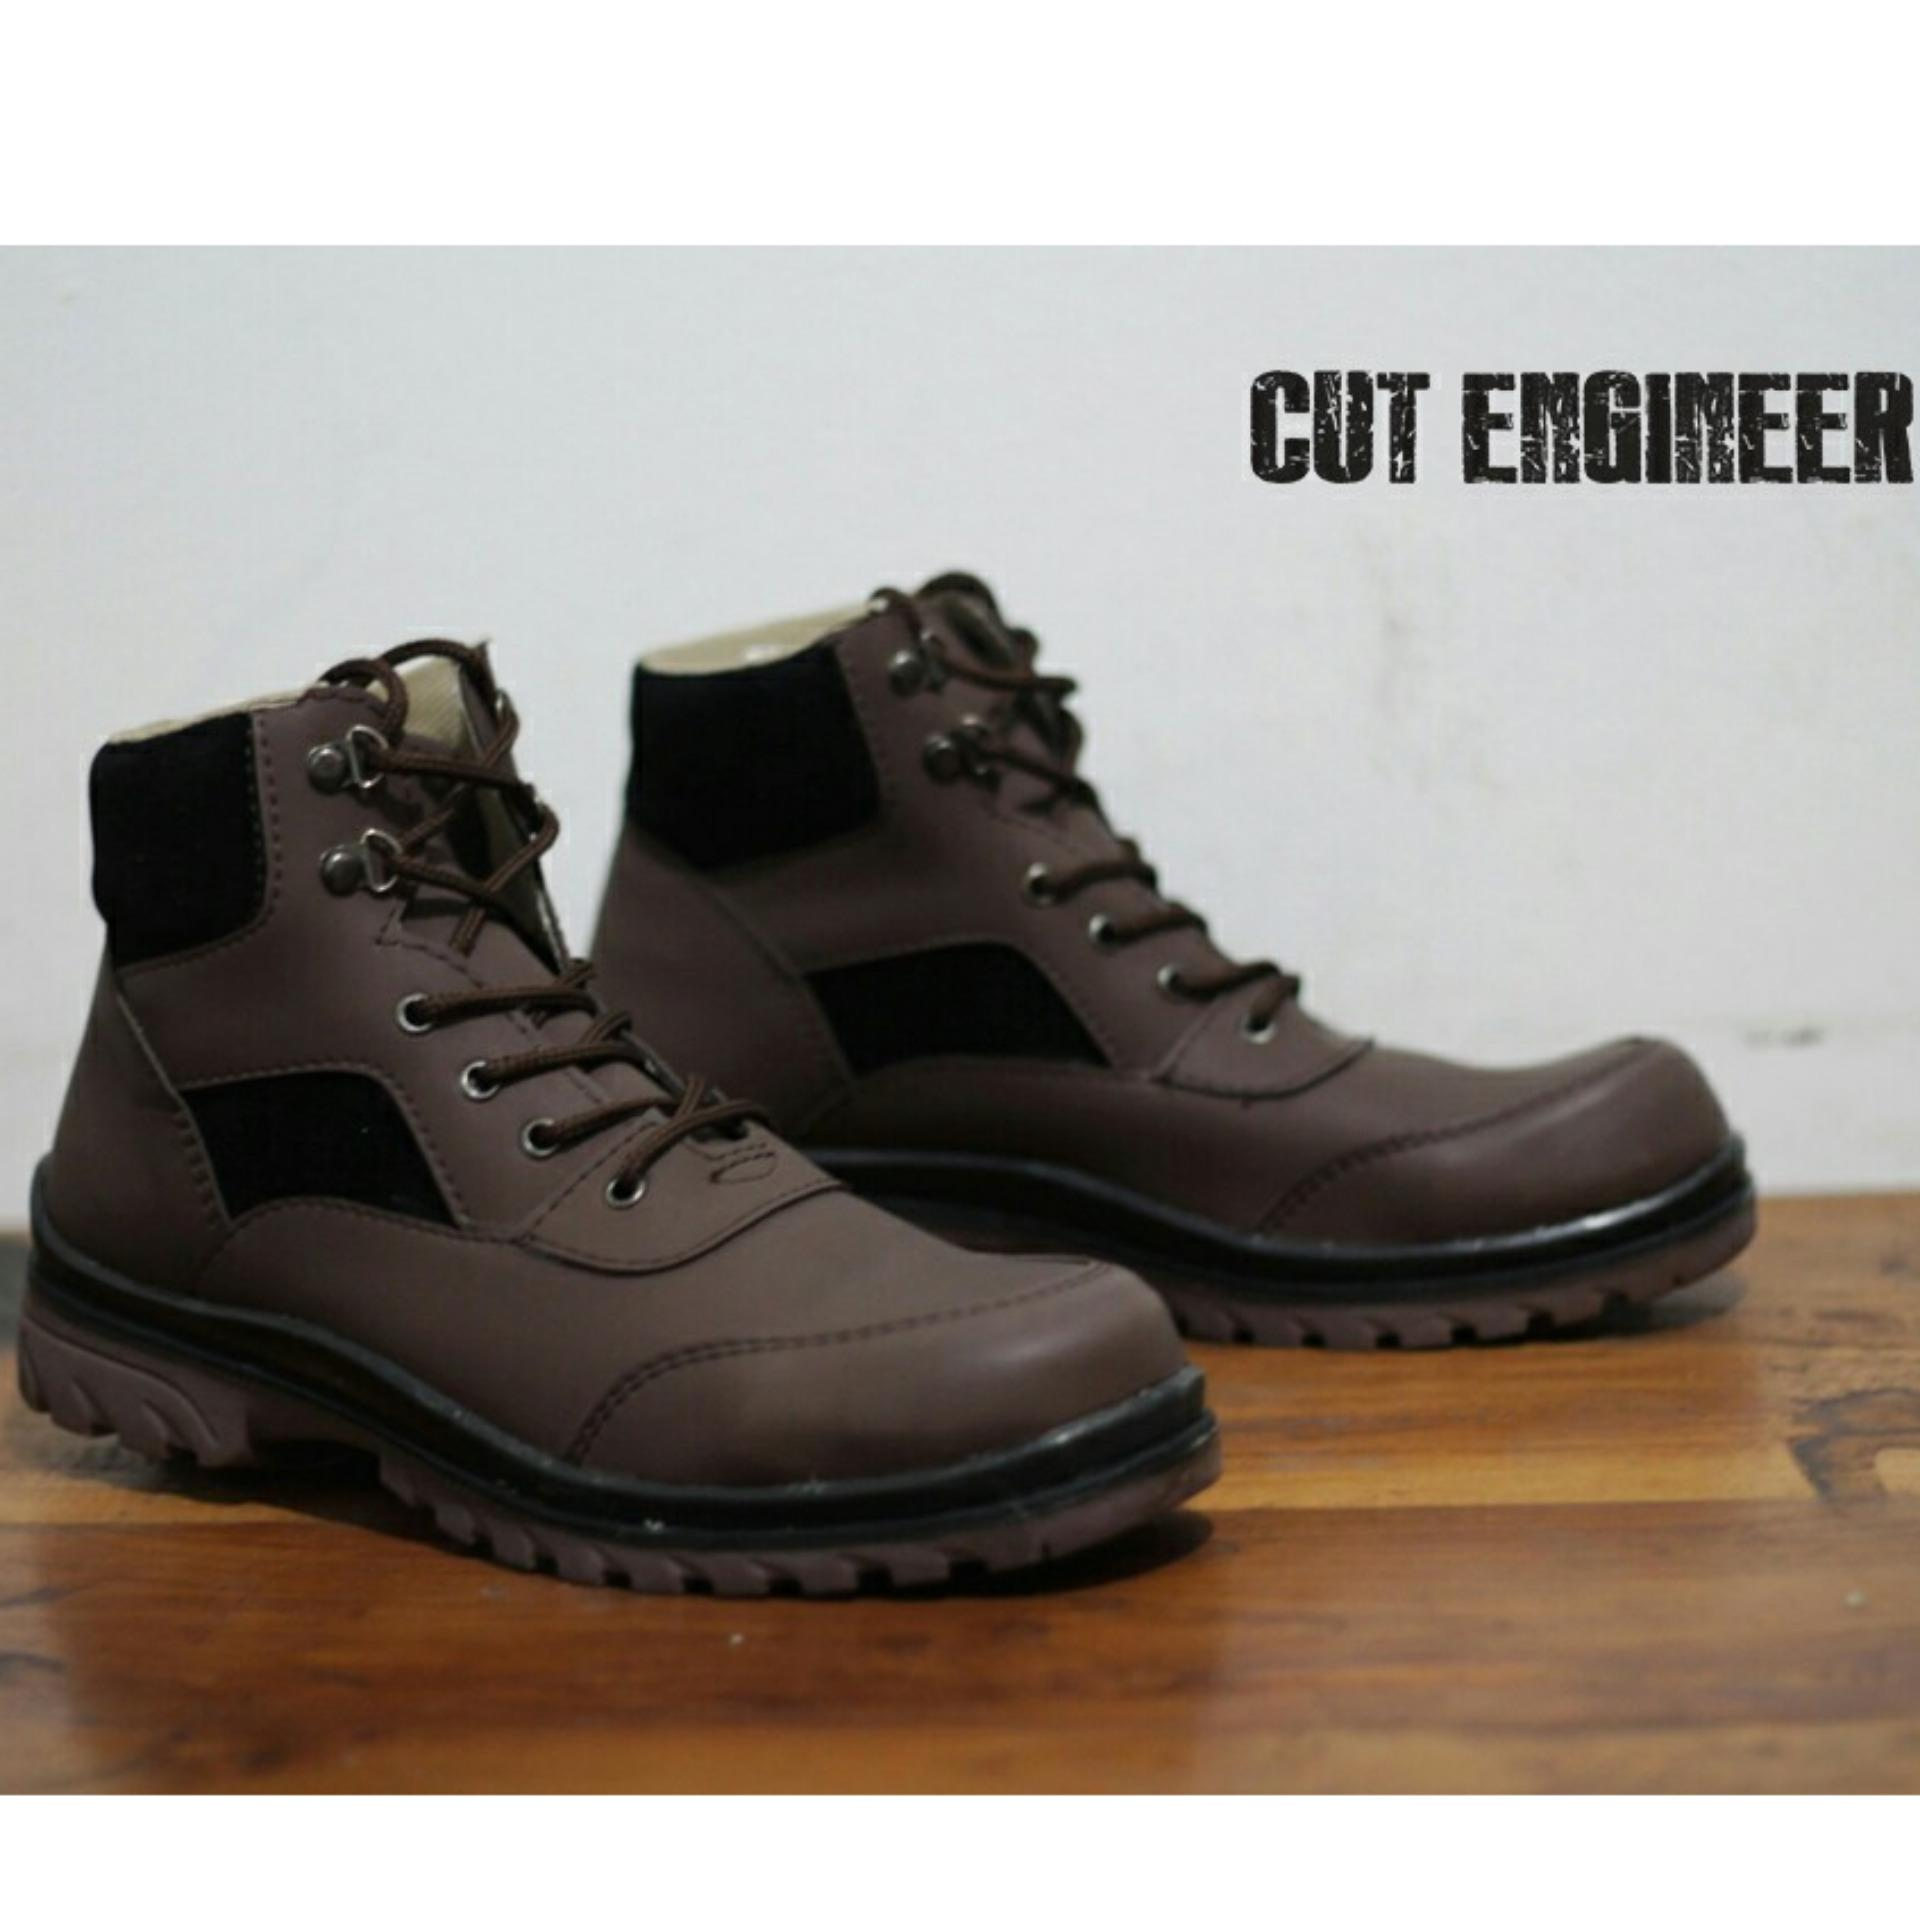 Sepatu Boots High Quality Tracking Pria Branded - CUT ENGINER CE 10 - Brown